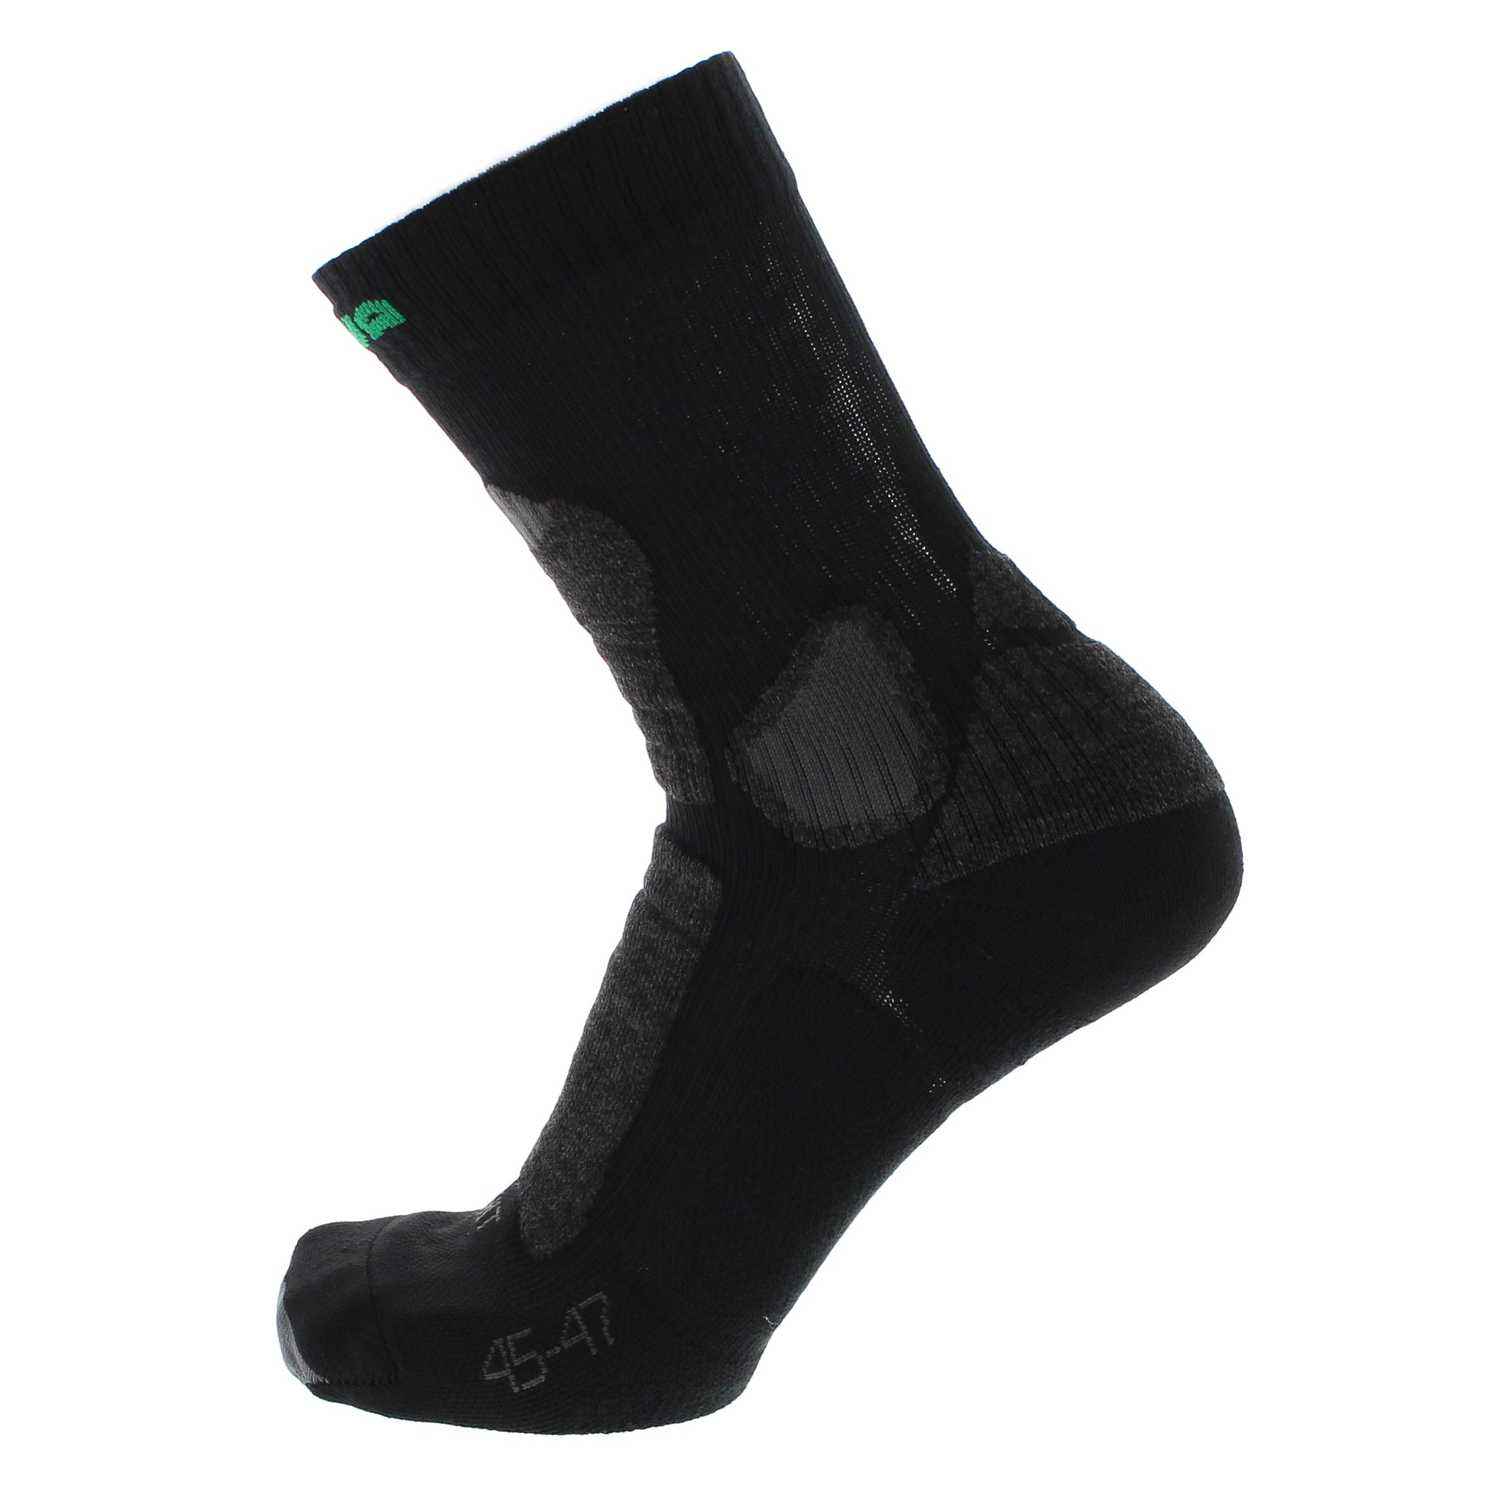 lowa-sox-all-terrain-light-index-4-schwarz-grau-unisex-socken